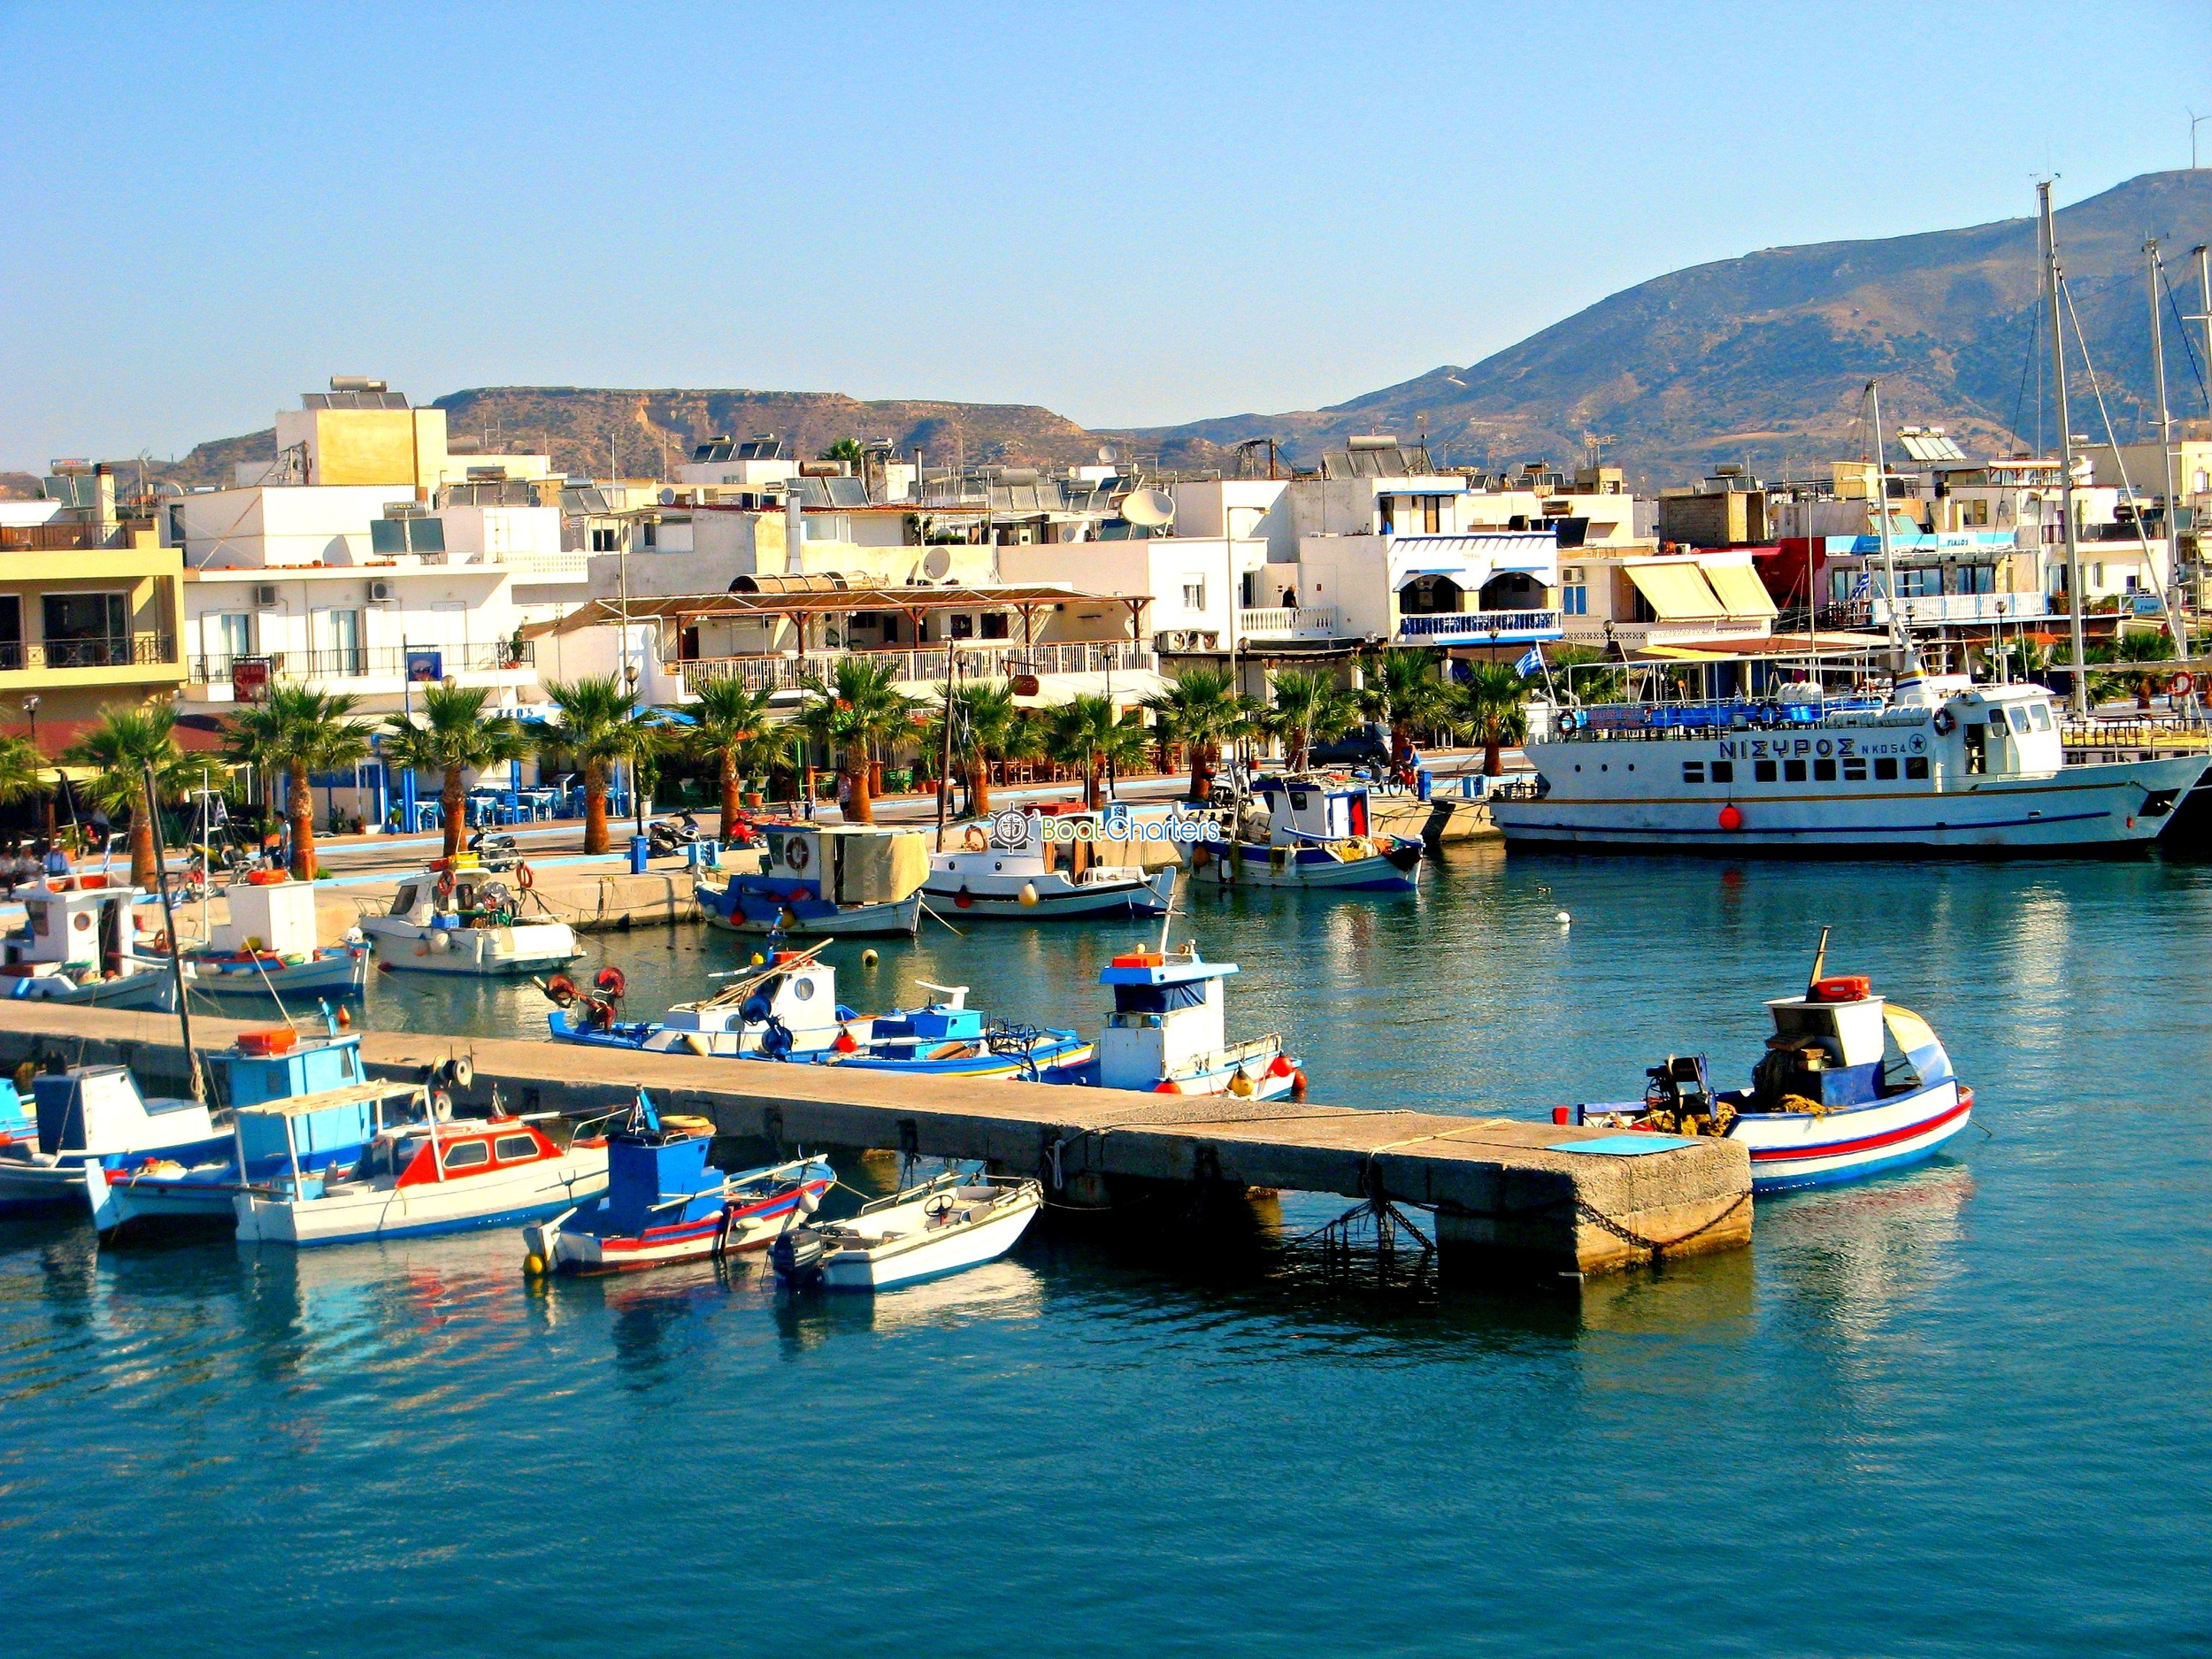 483_Greek Island-Nisyros (5).jpg